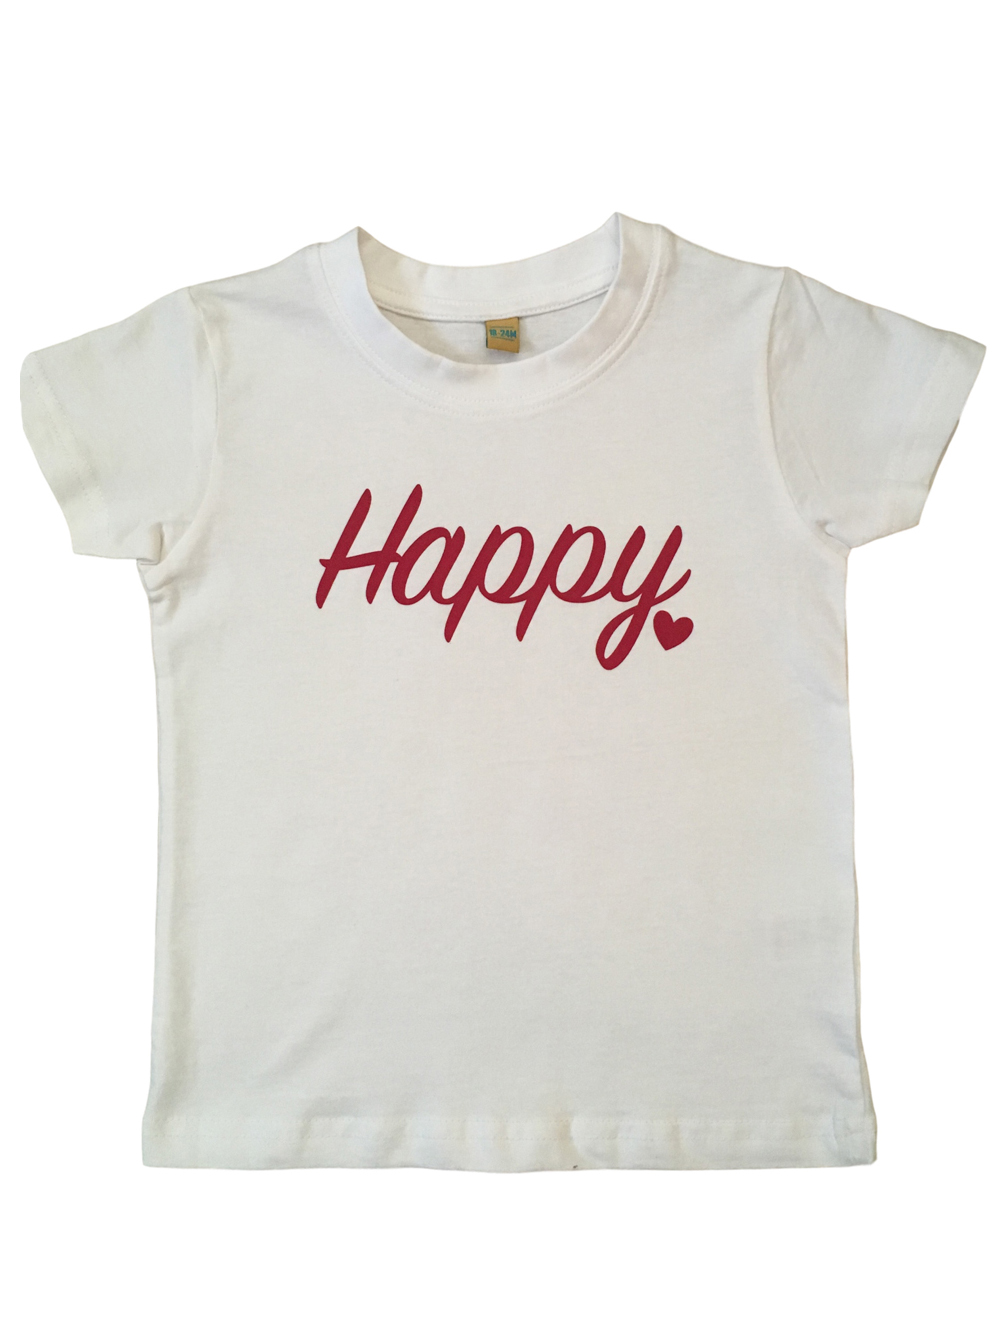 Childrens – White Happy T-shirt 18-24 Months